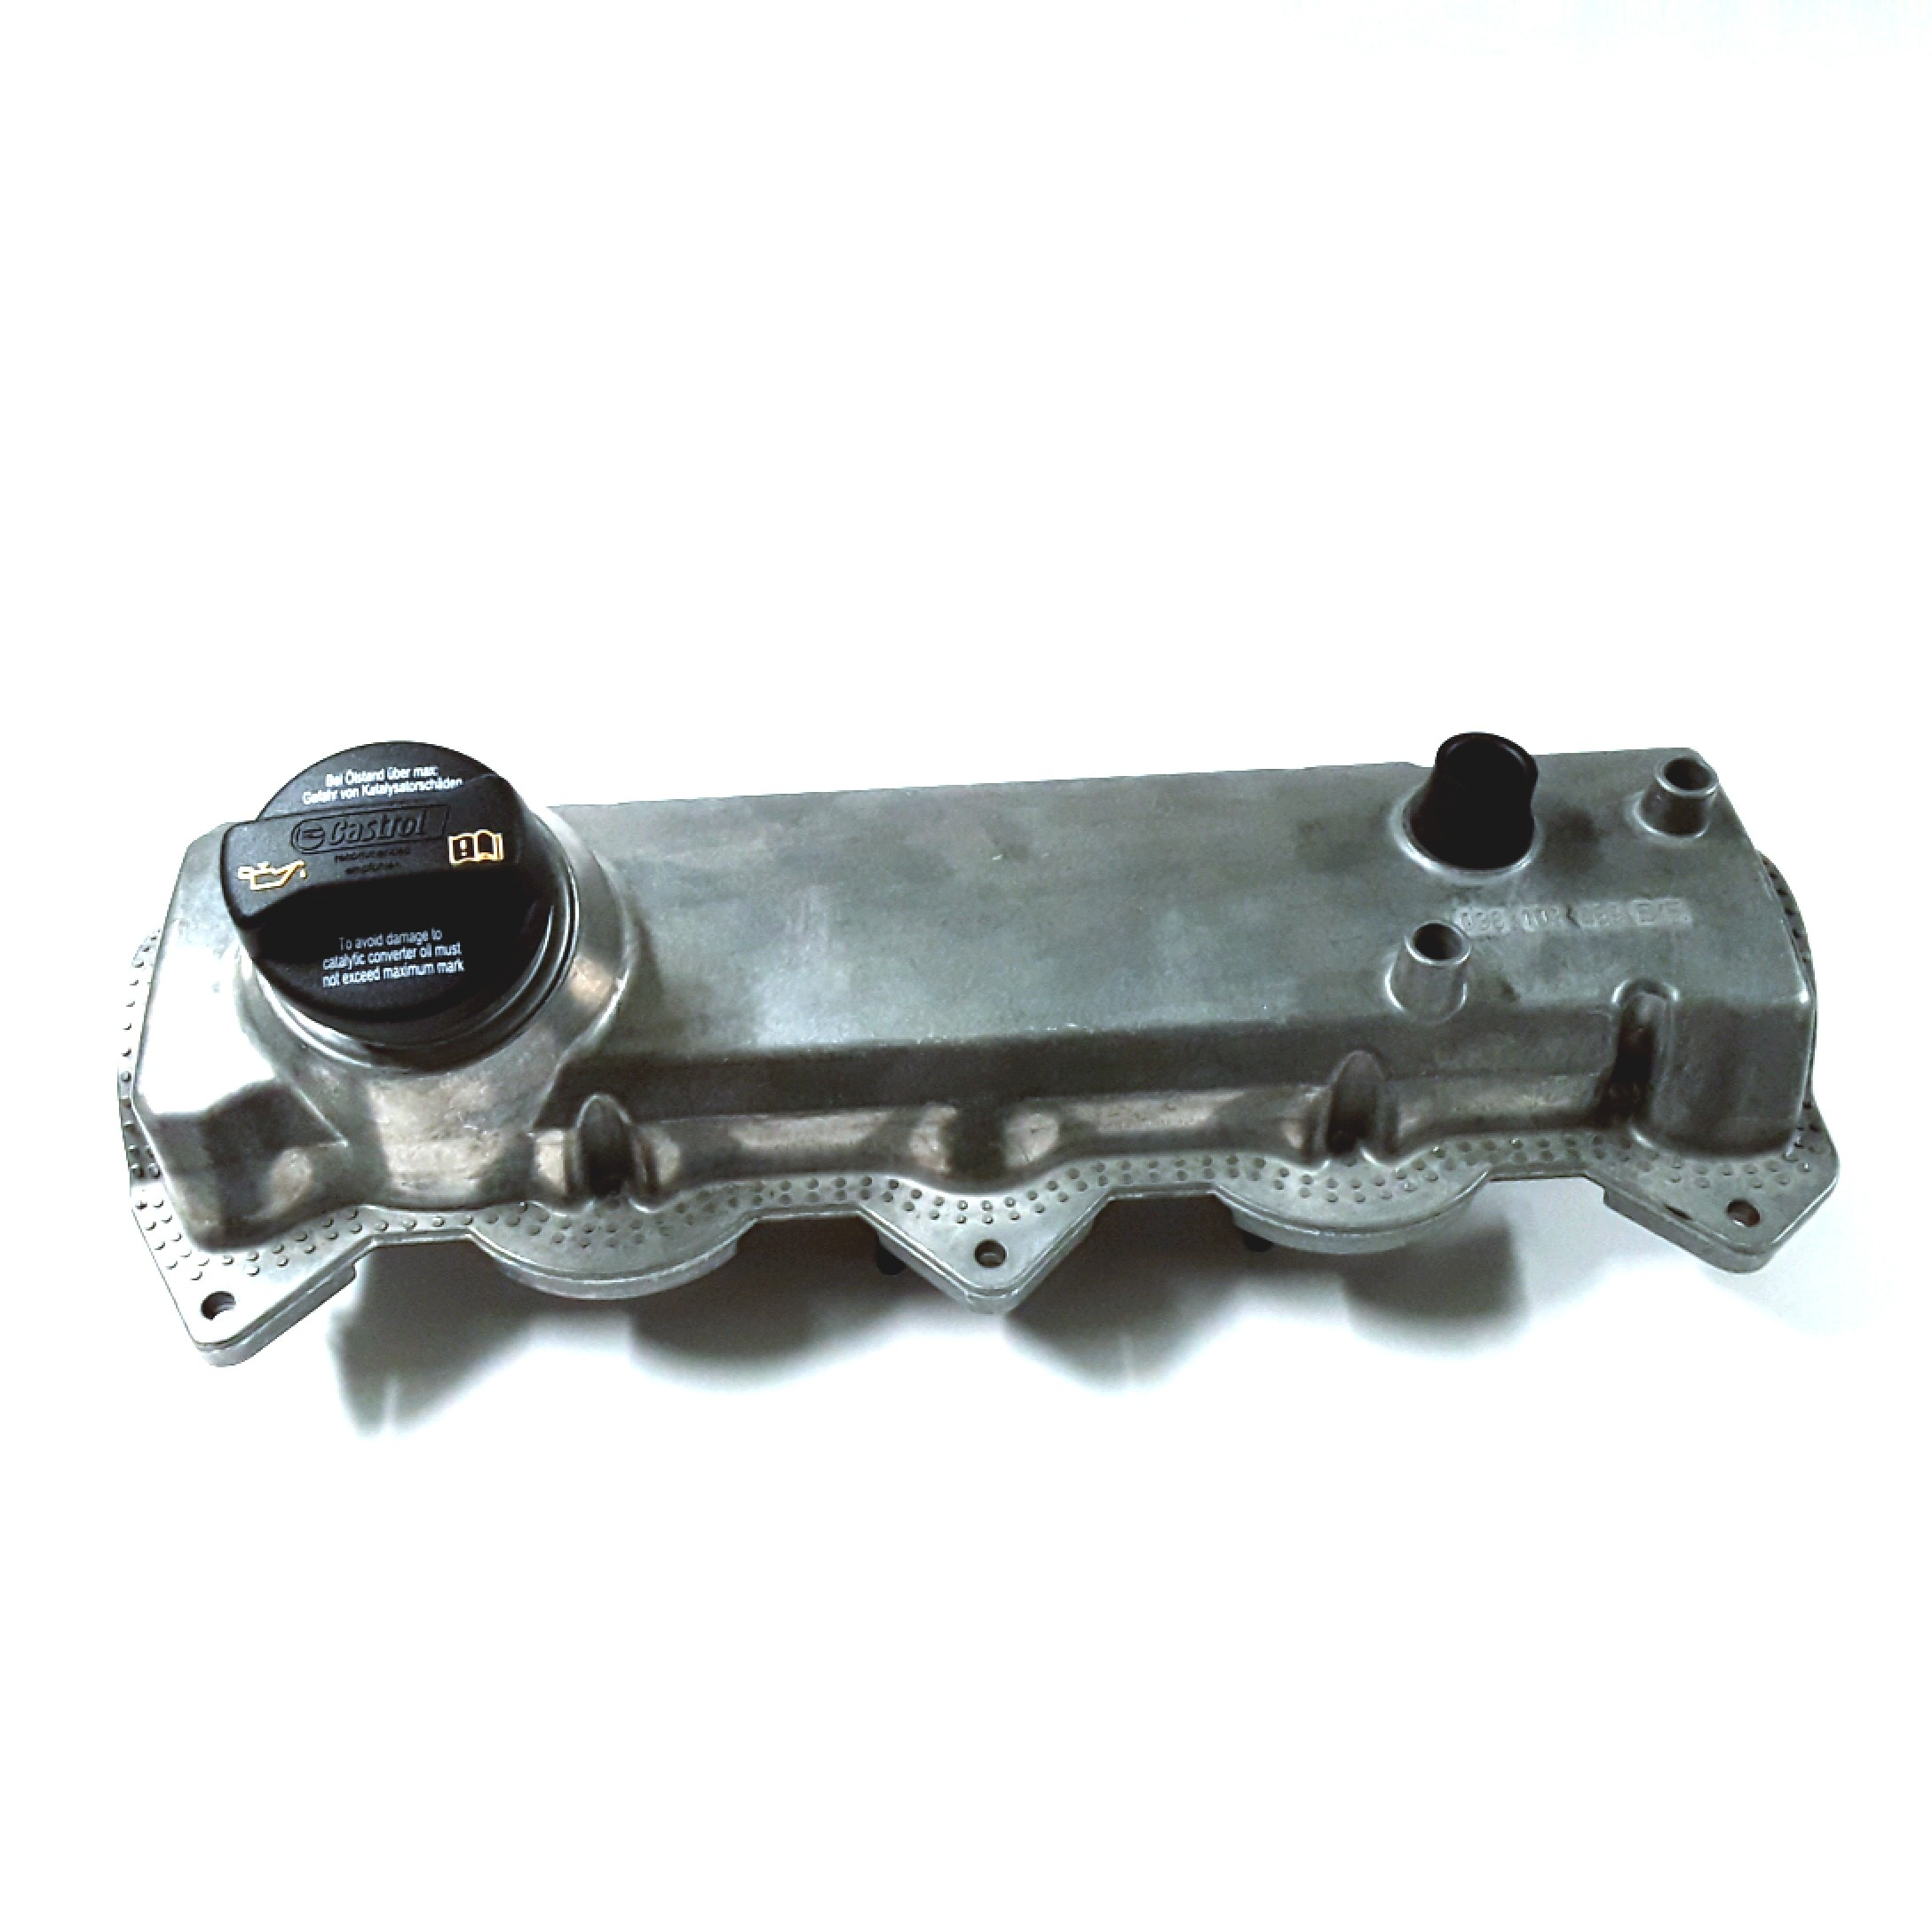 2001 Volkswagen Golf Transmission: 2001 Volkswagen Golf Engine Valve Cover. 1998-2003. 1999